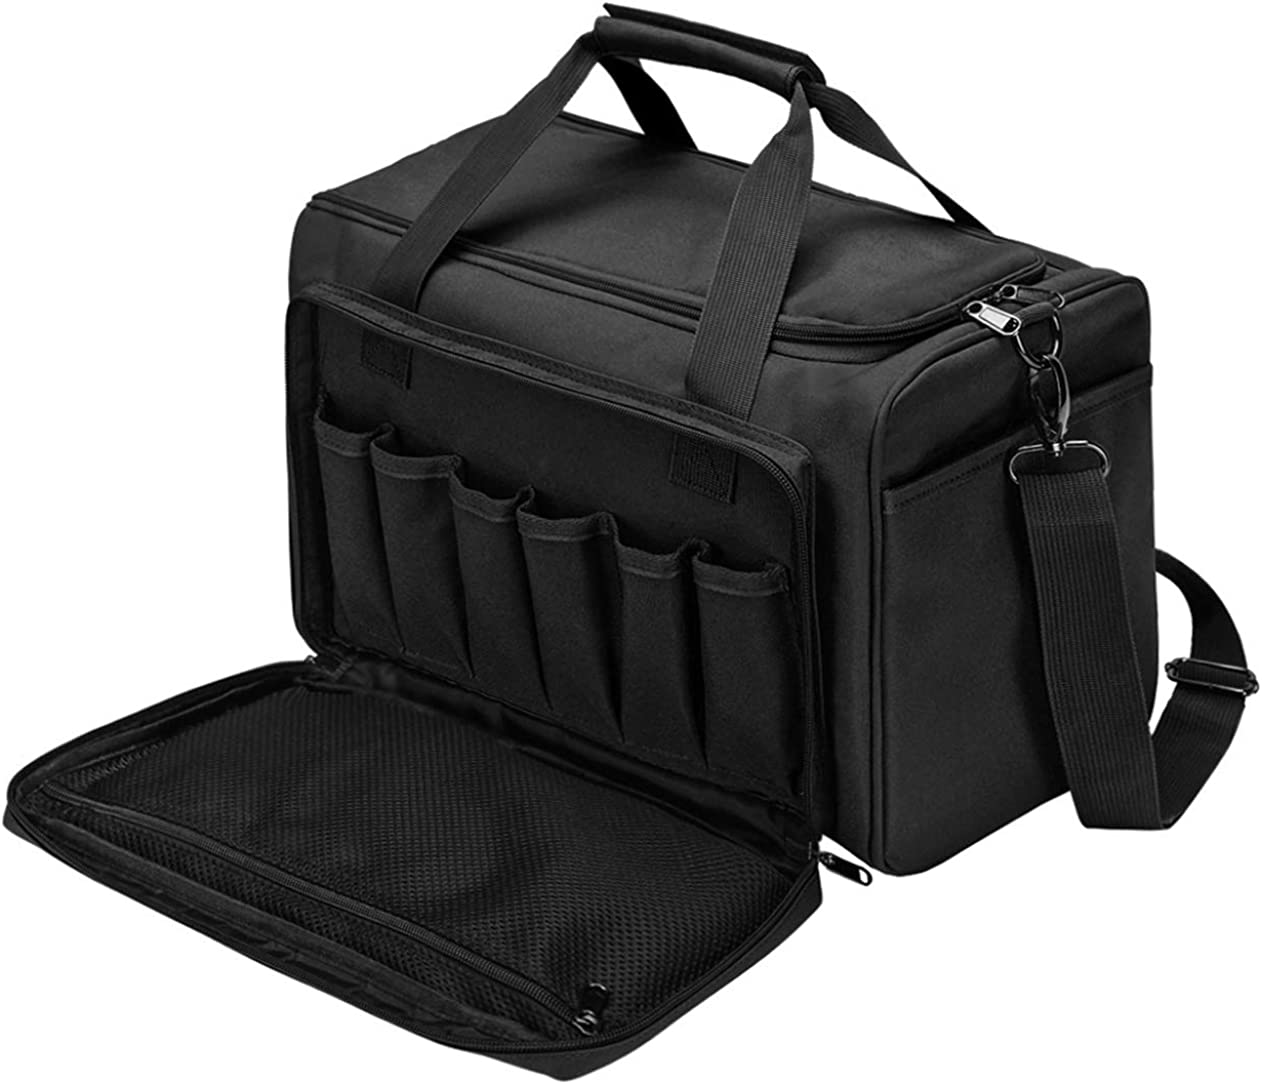 YUOTO Tactical Shooting Range Bag Gun Ammo Pistol Bag